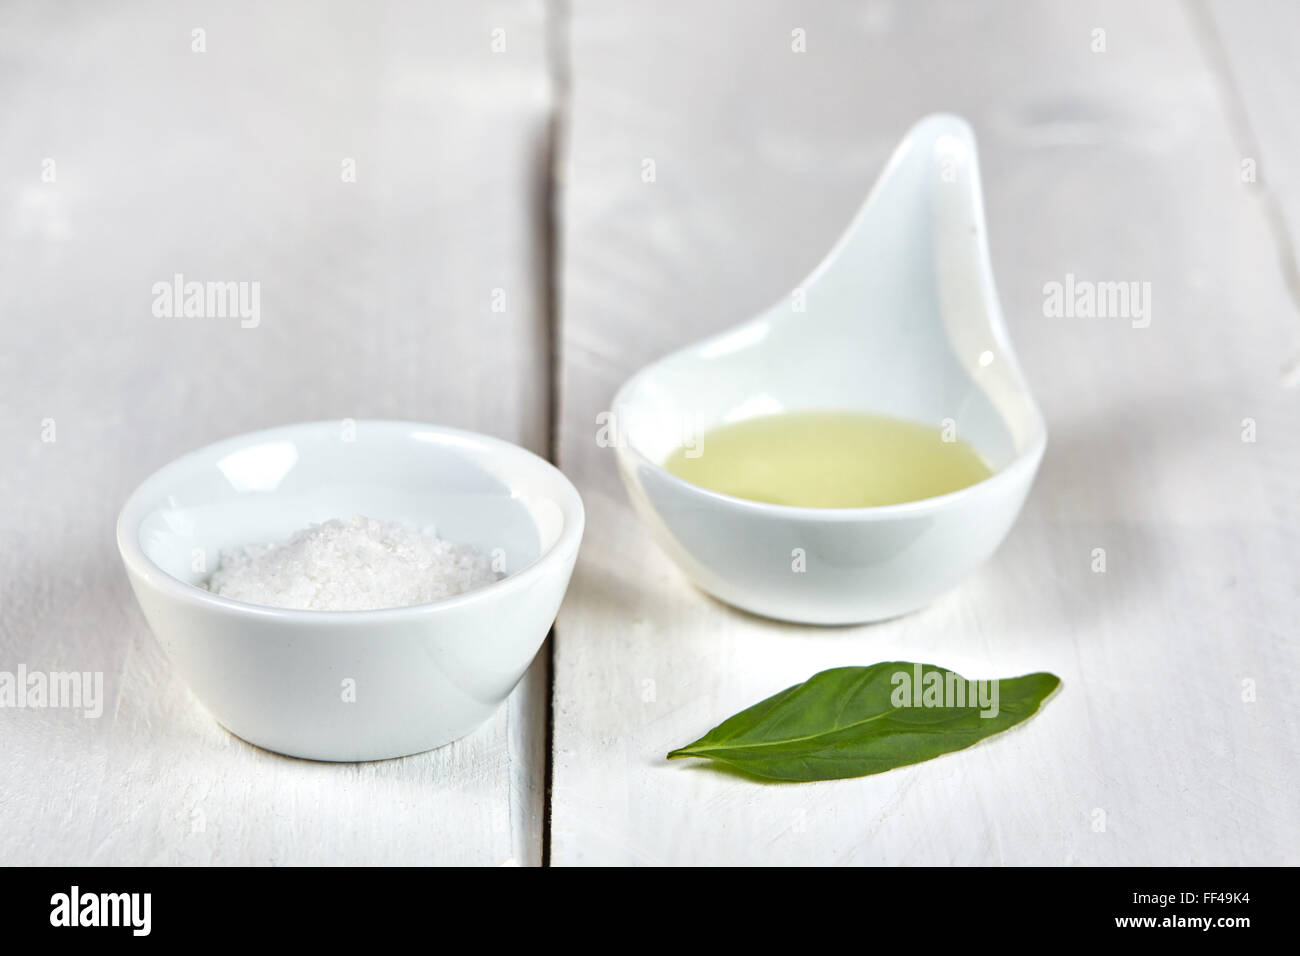 Salt and oil in dishes with a green basil leaf on a white wooden table. - Stock Image